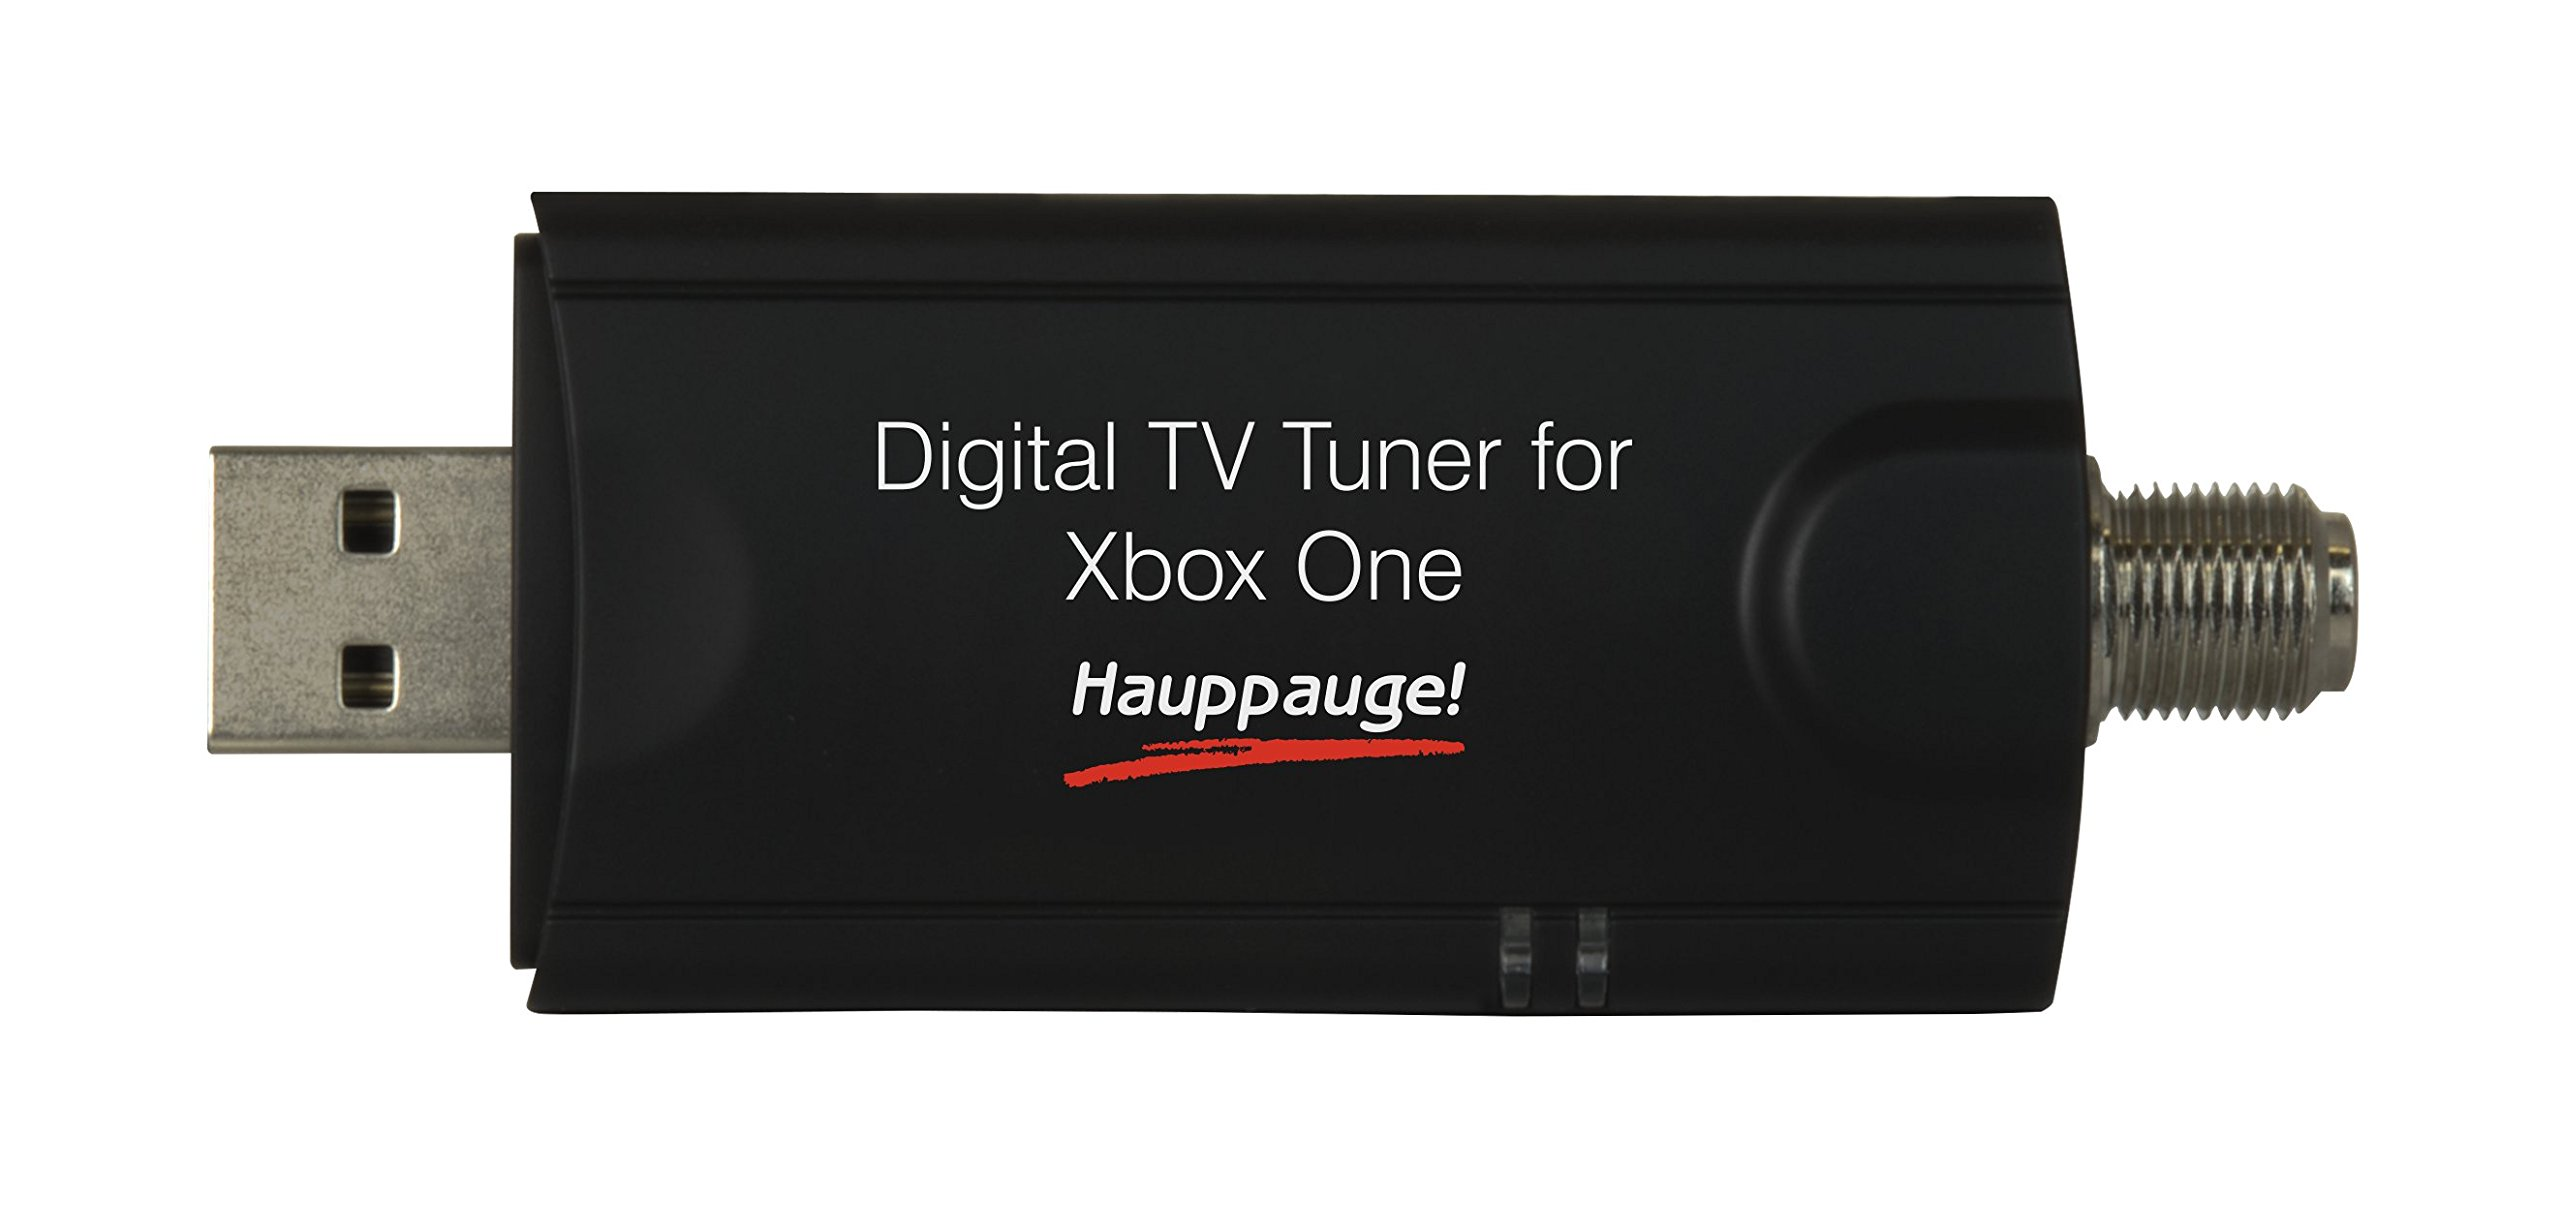 Hauppauge Digital TV Tuner for Xbox One TV Tuners and Video Capture 1578 by Hauppauge